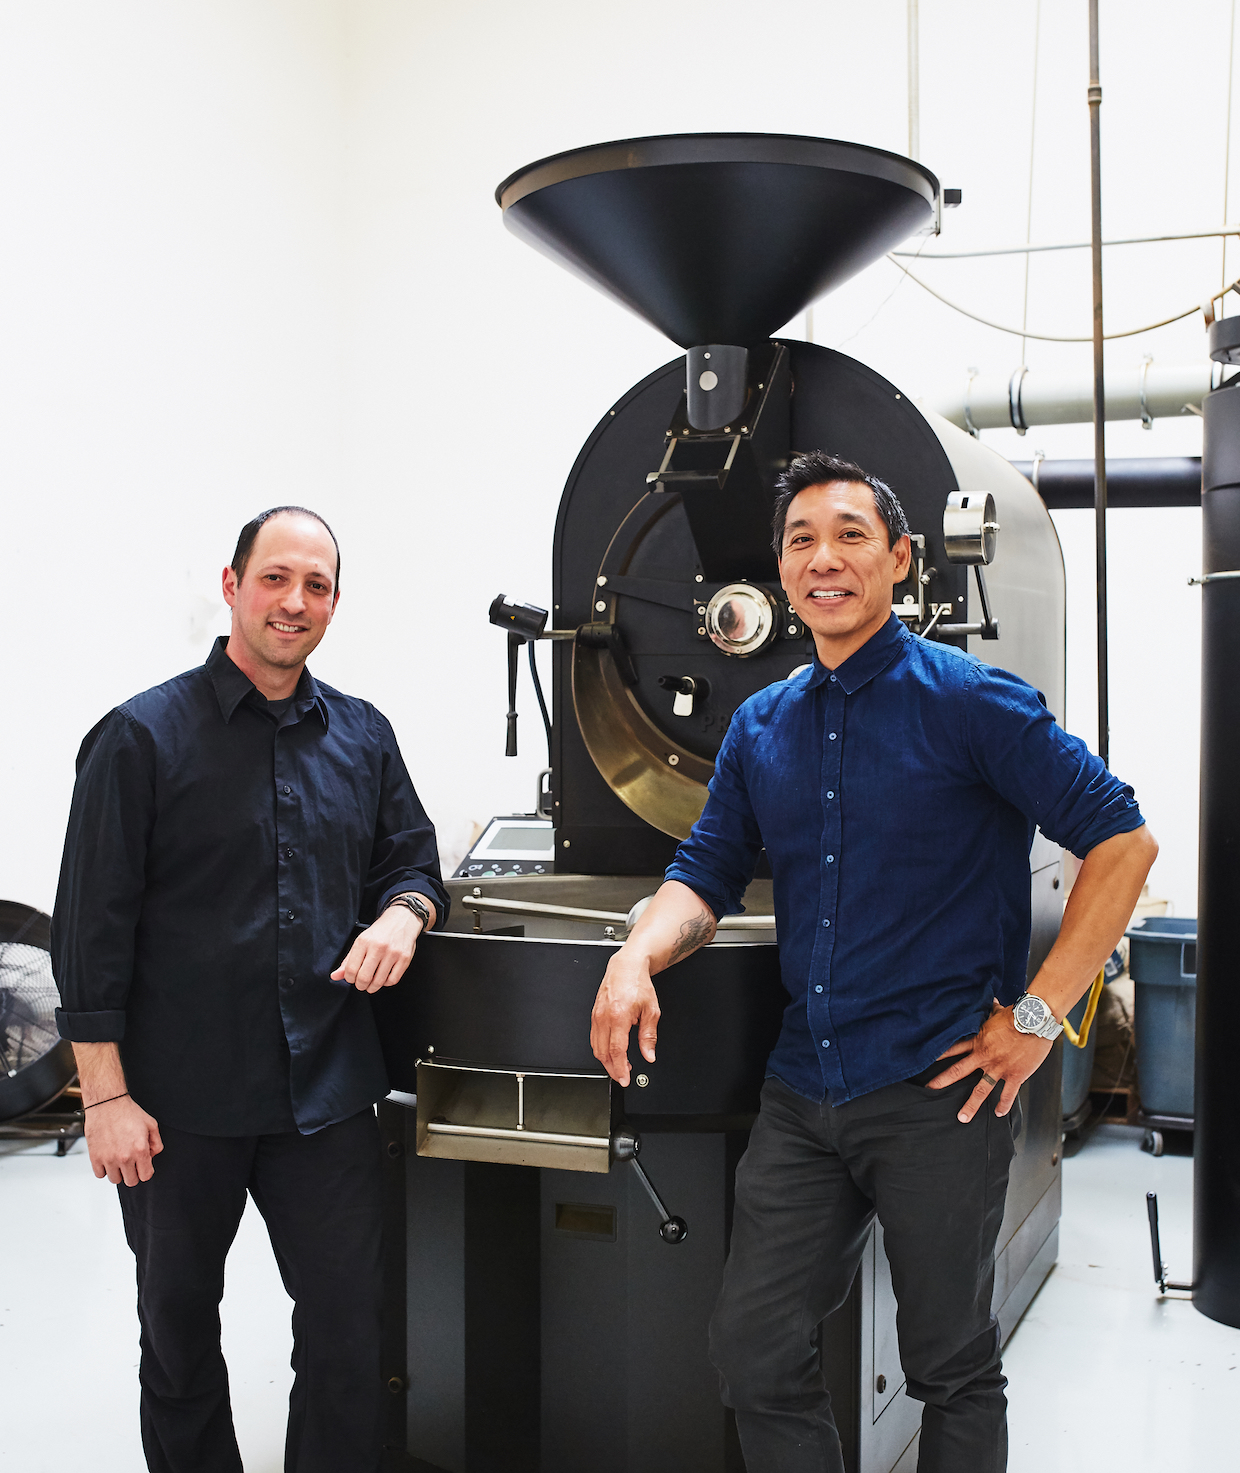 20181018_Mark Wain and Gary Chau at Roastery-308 credit Alicia Cho